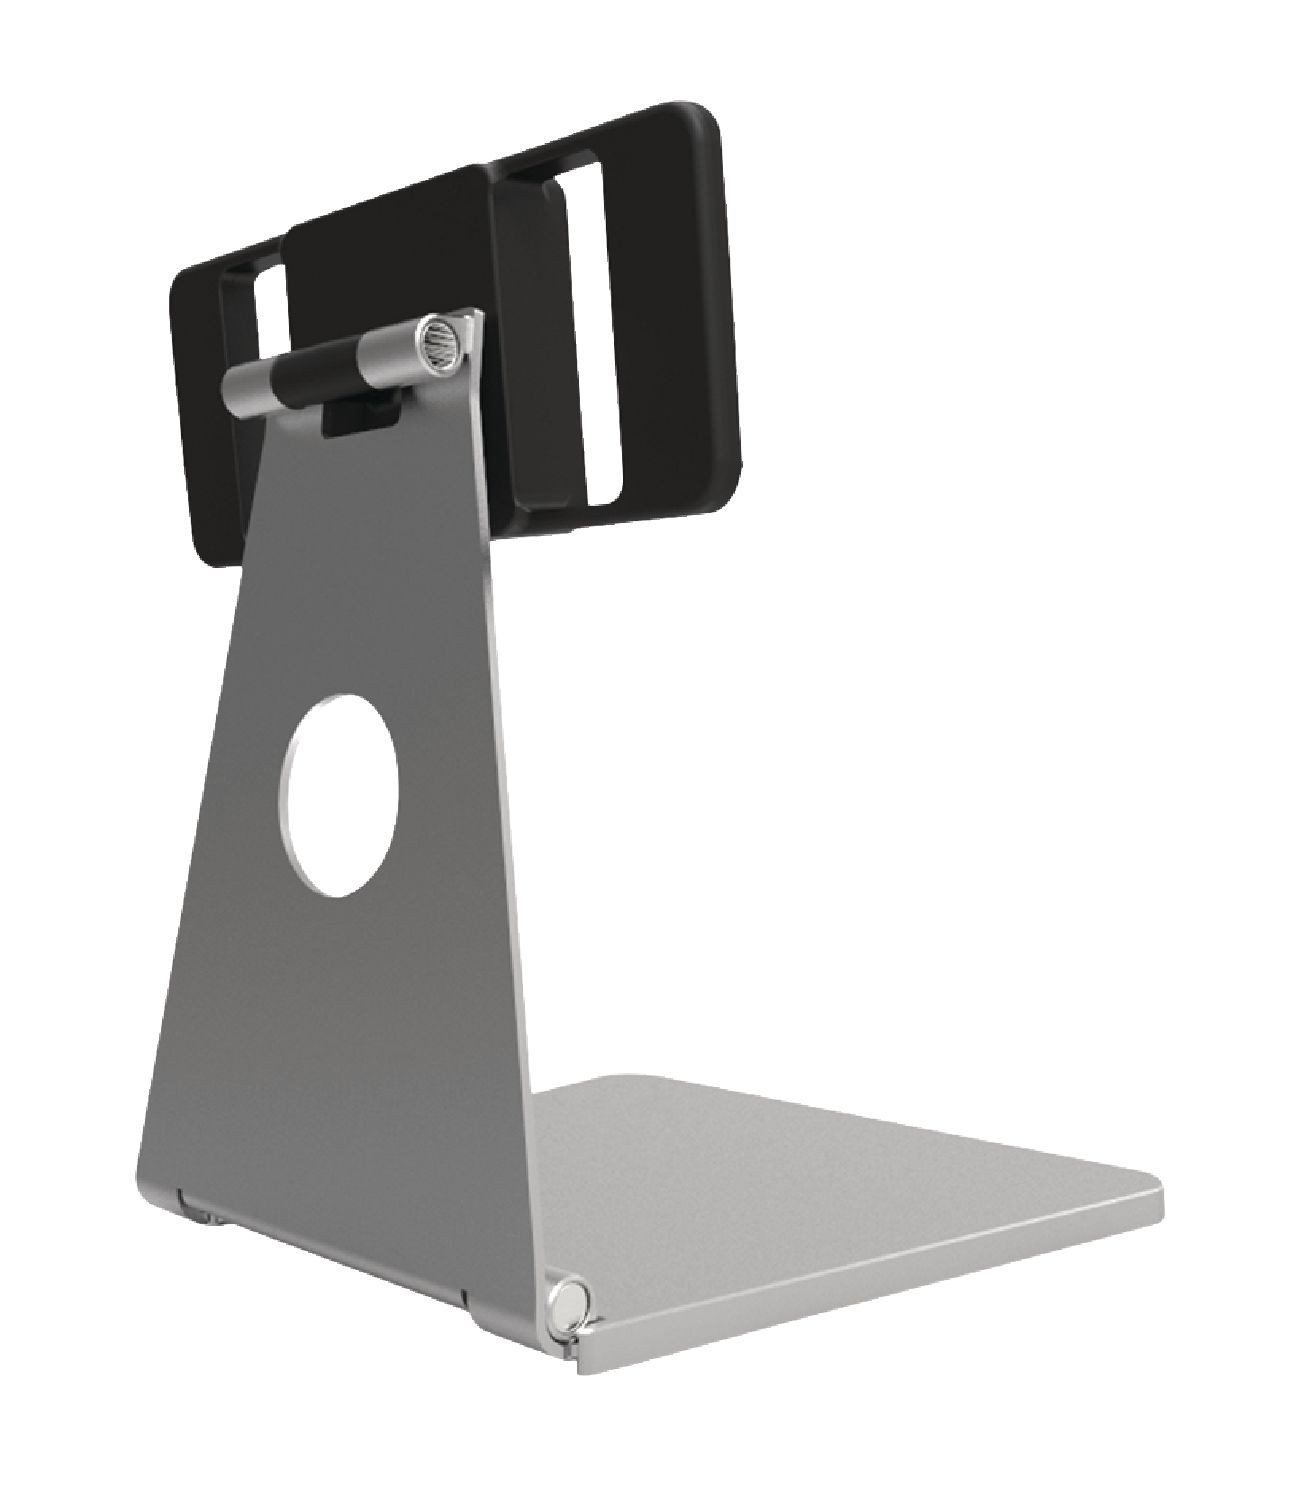 Tv Muursteun Konig Tablet Stand Full Motion Apple Ipad Air | Falcon